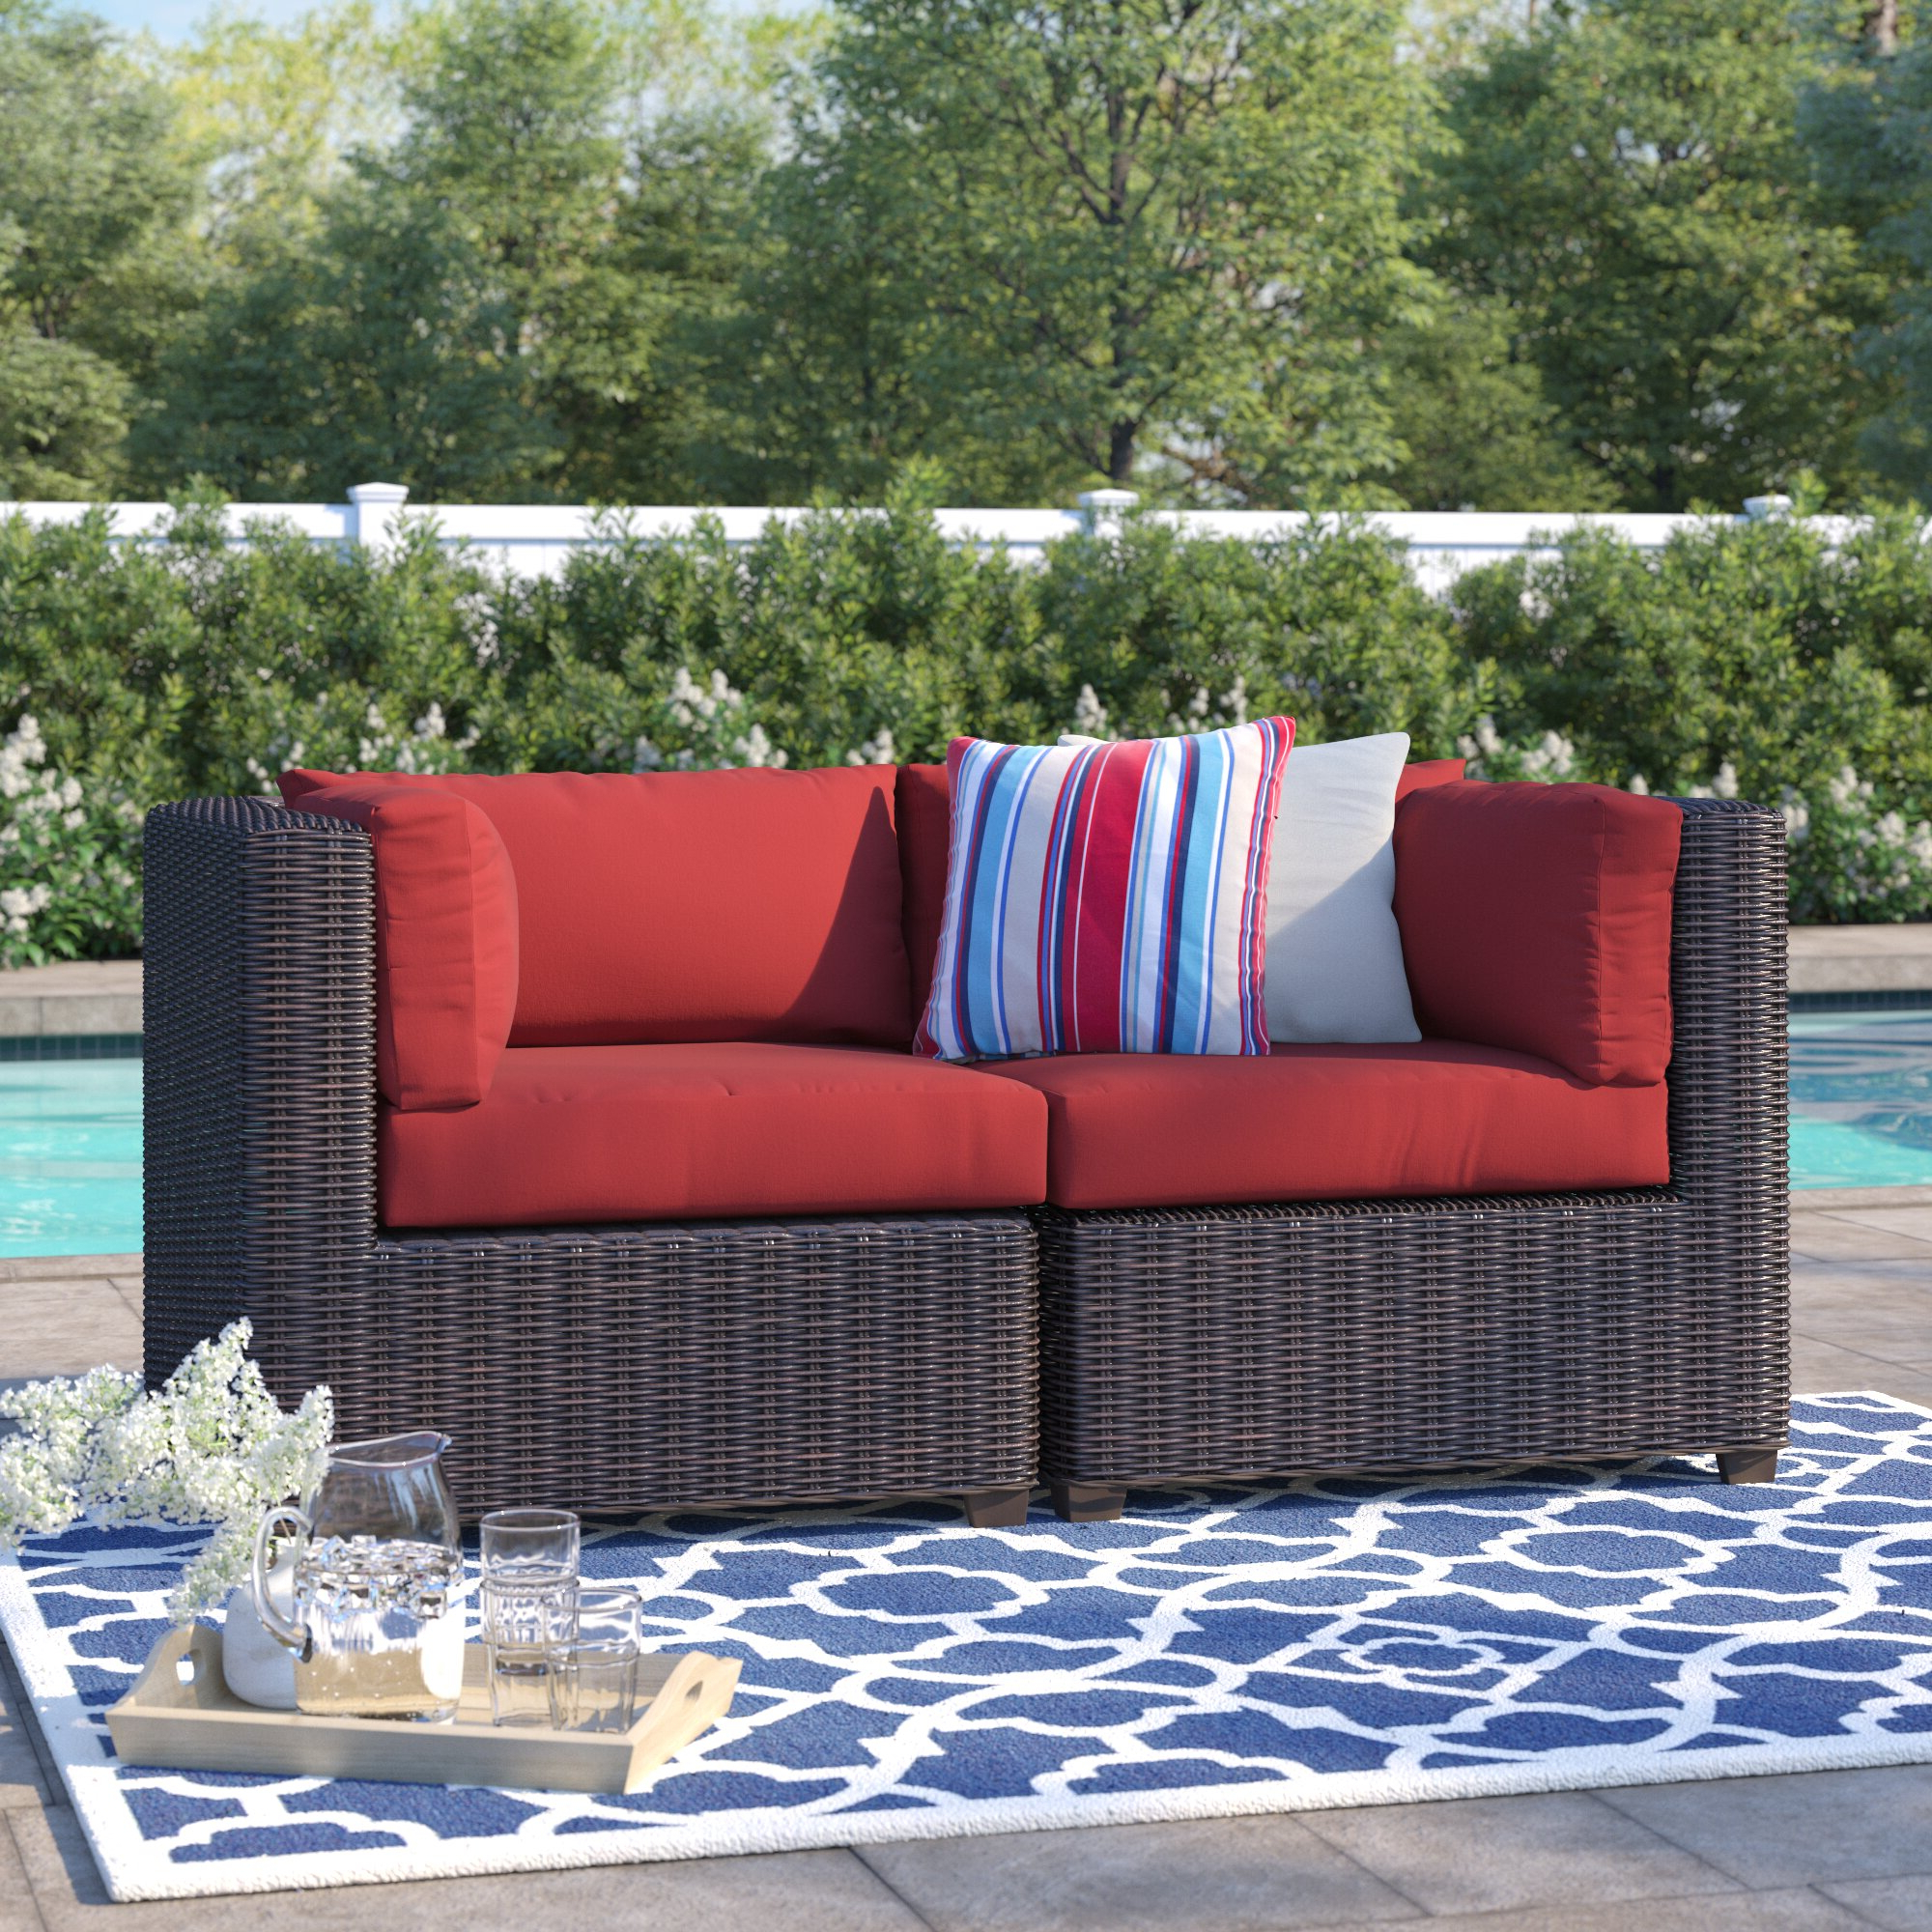 Fairfield Patio Loveseat With Cushions Throughout Most Up To Date Camak Patio Loveseats With Cushions (View 8 of 20)